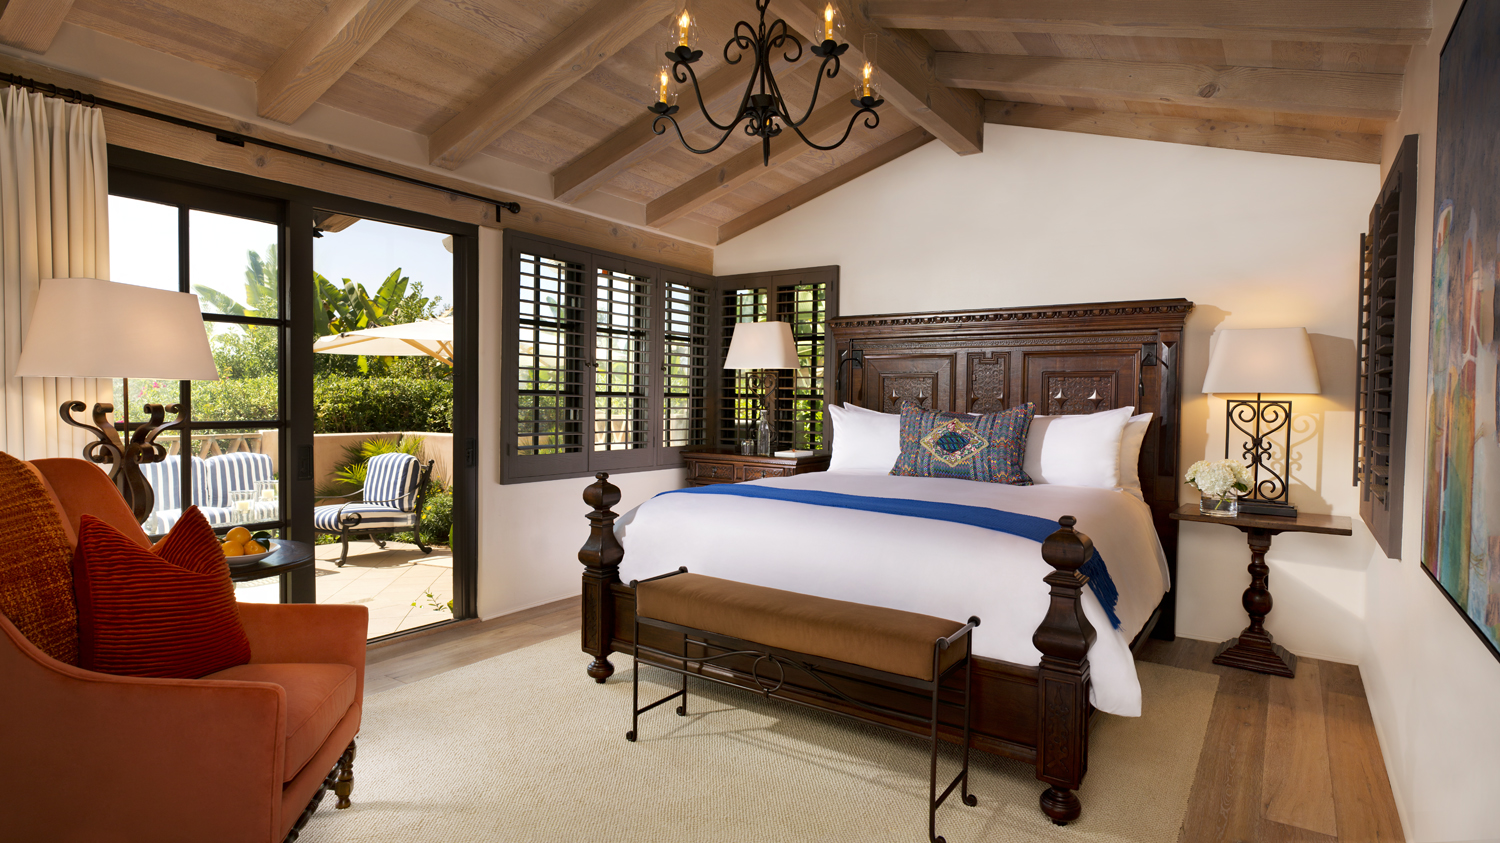 Large king bedroom with doors to private patio, chair in Valencia hotel suite at Rancho Valencia